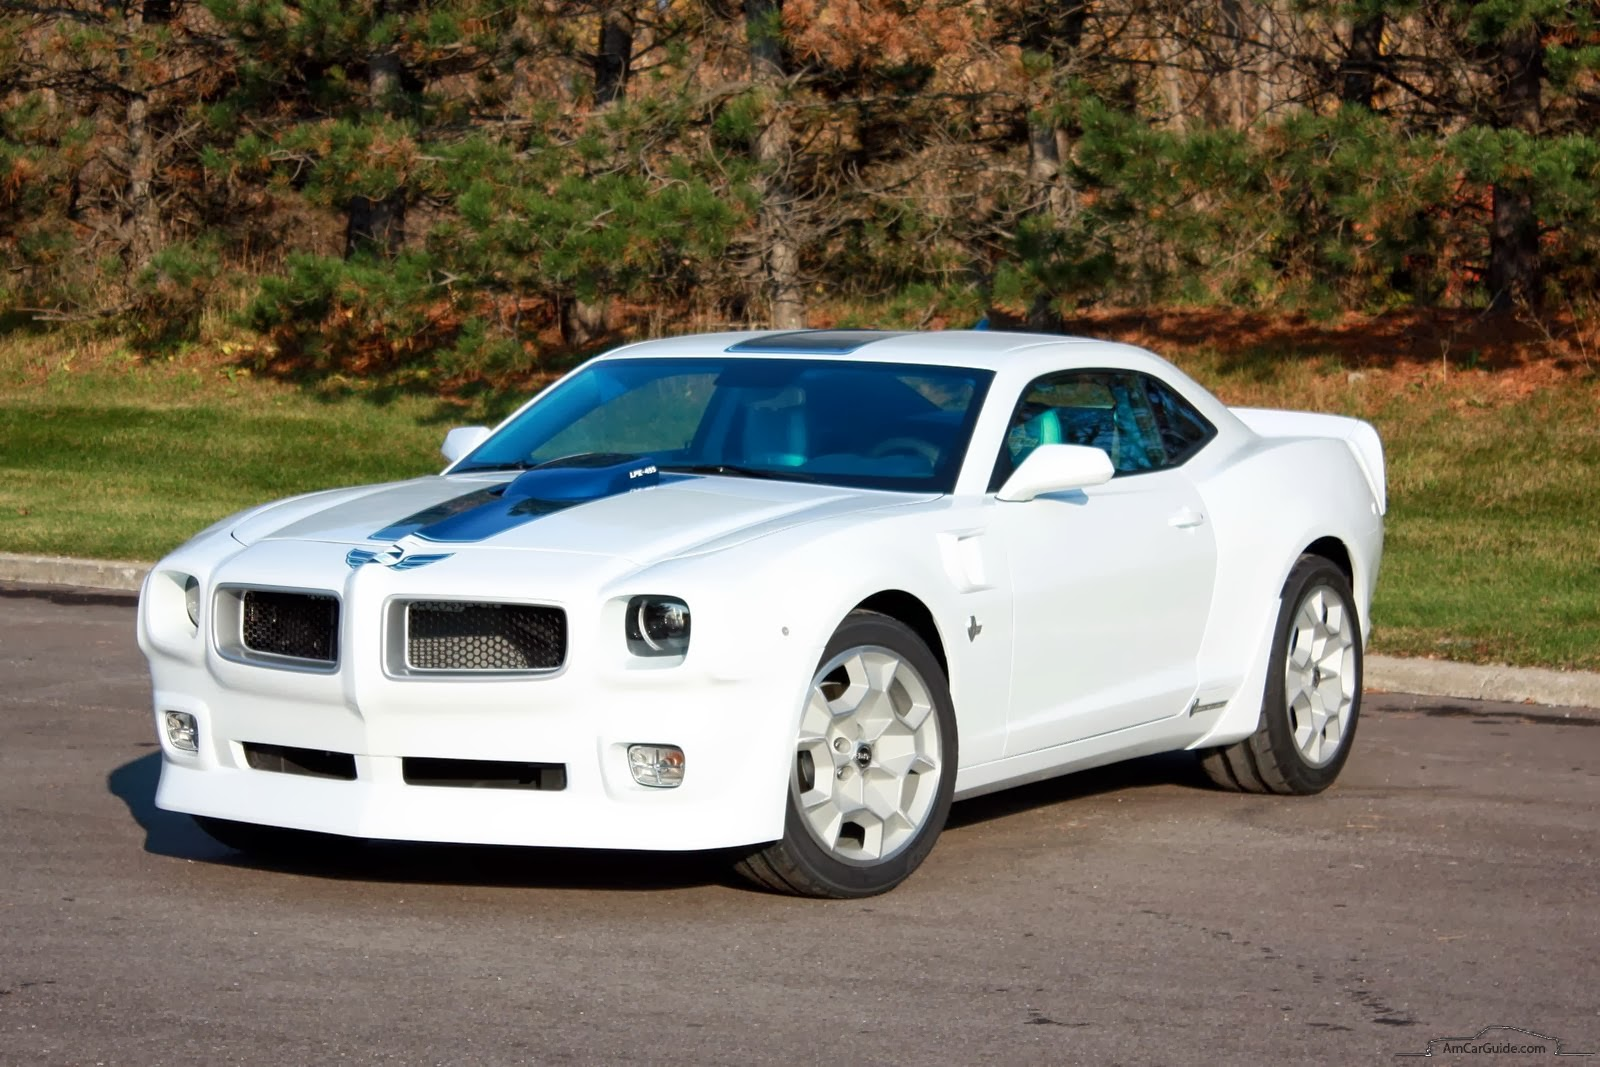 2016 Firebird This image has been resized.